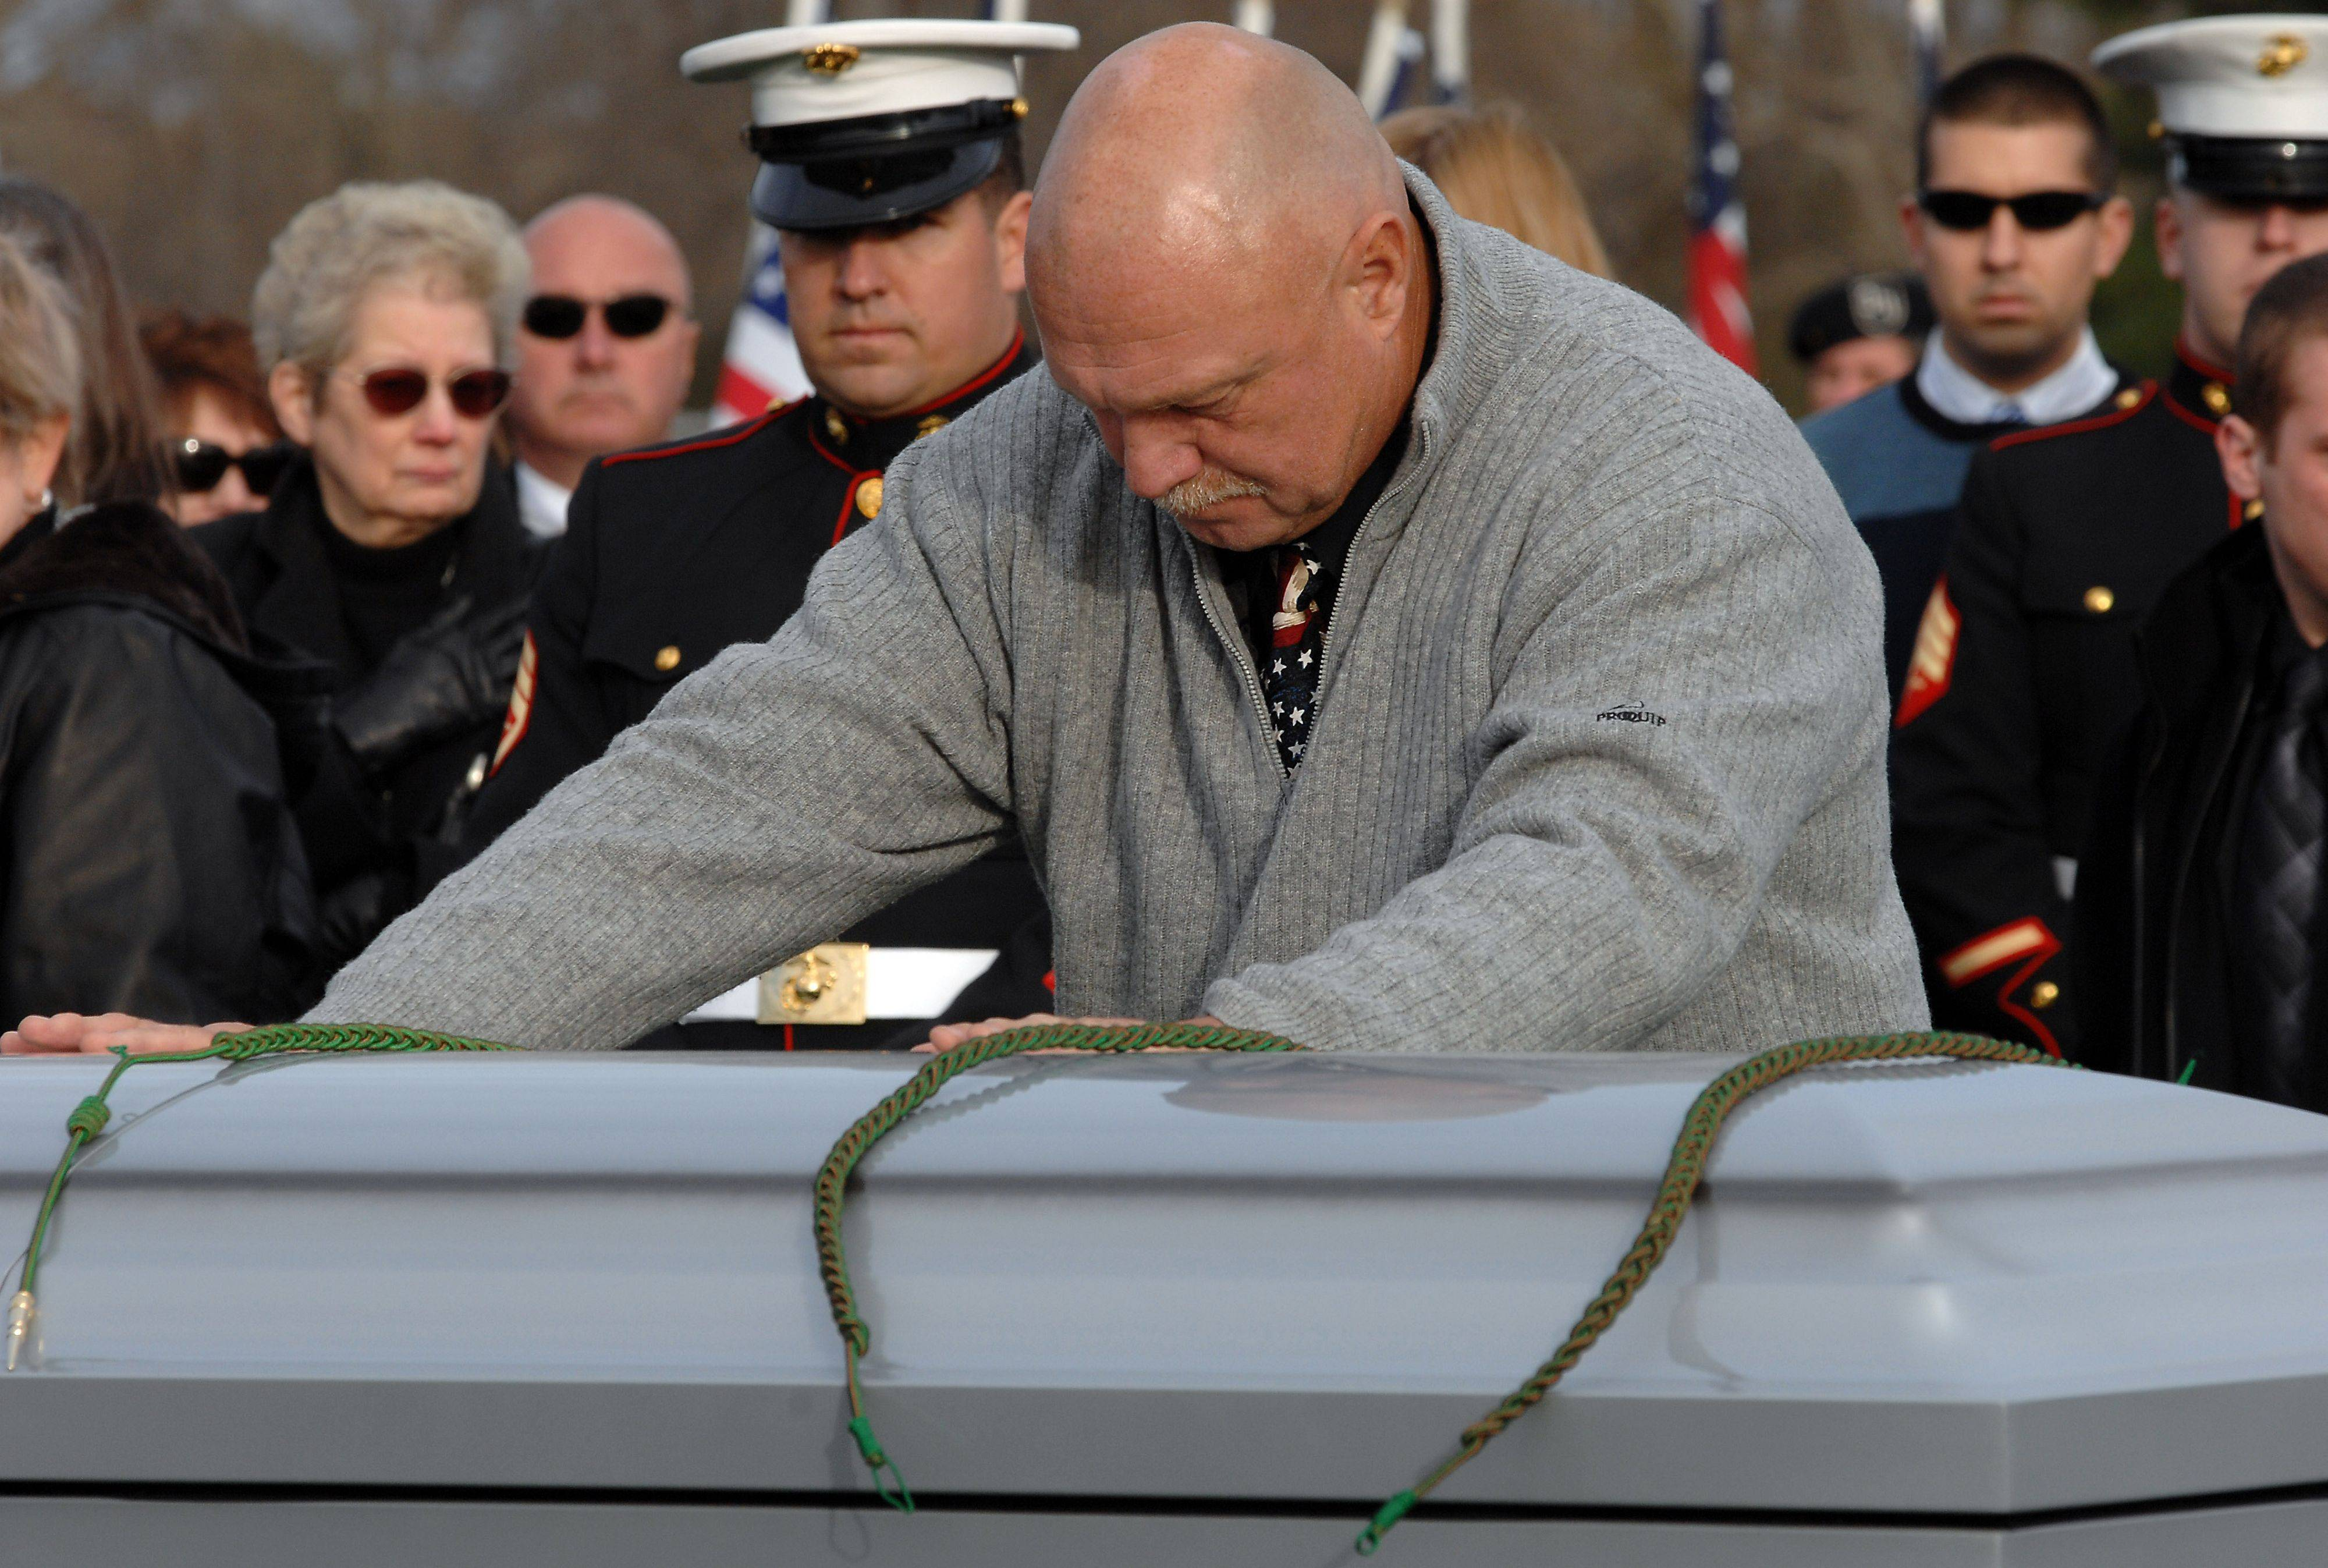 Dean Schulatz of Itasca who is a cousin to the family lays his hands on the coffin of Lance Corporal James Stack in a final goodbye after the funeral service in Memoral Garden on Saturday.